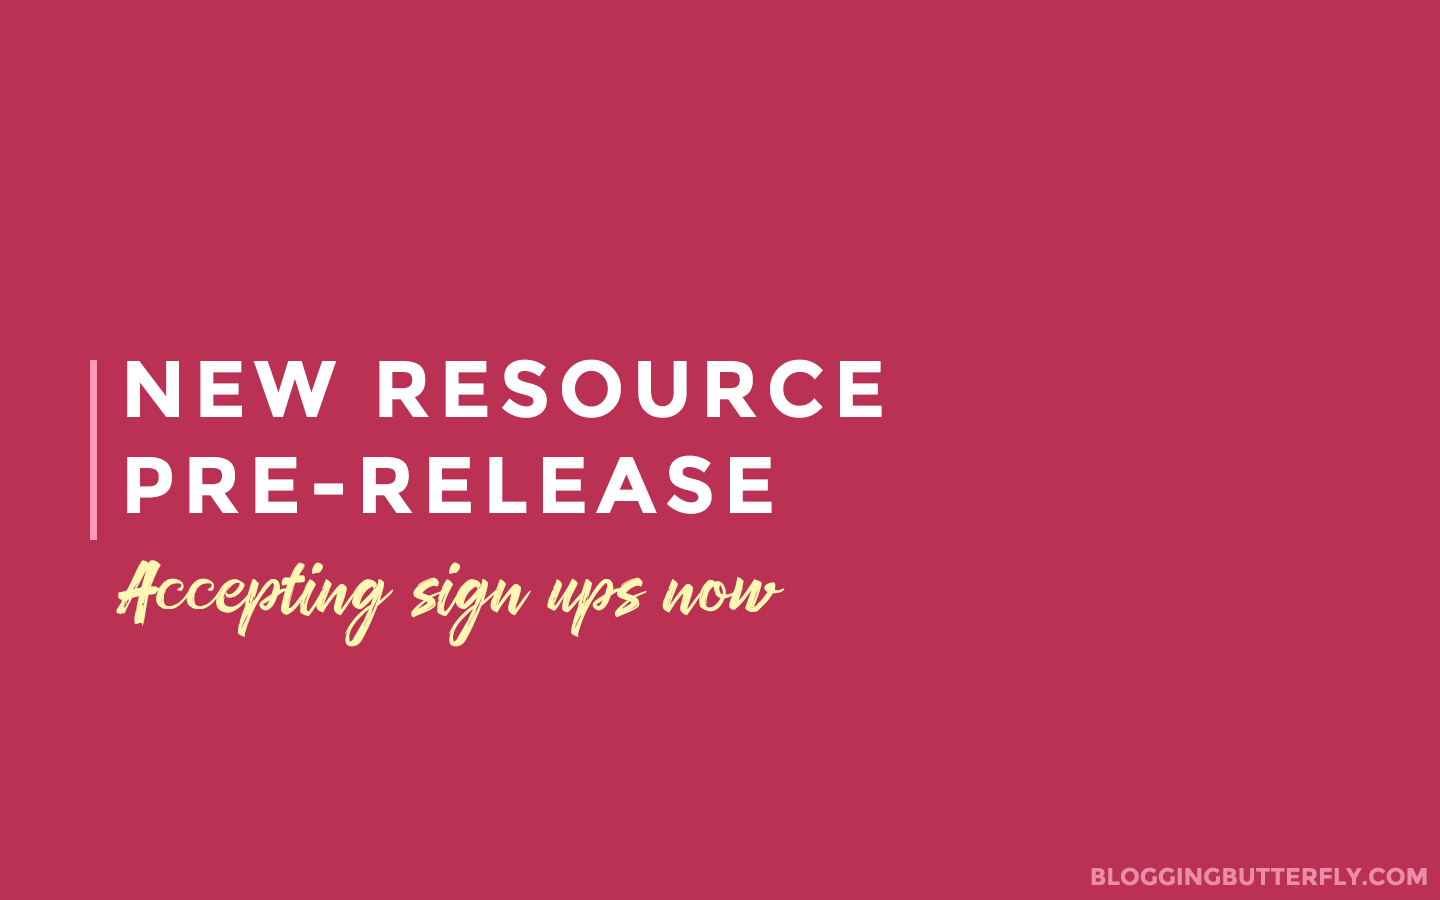 New blogging resource coming soon - accepting sign ups now